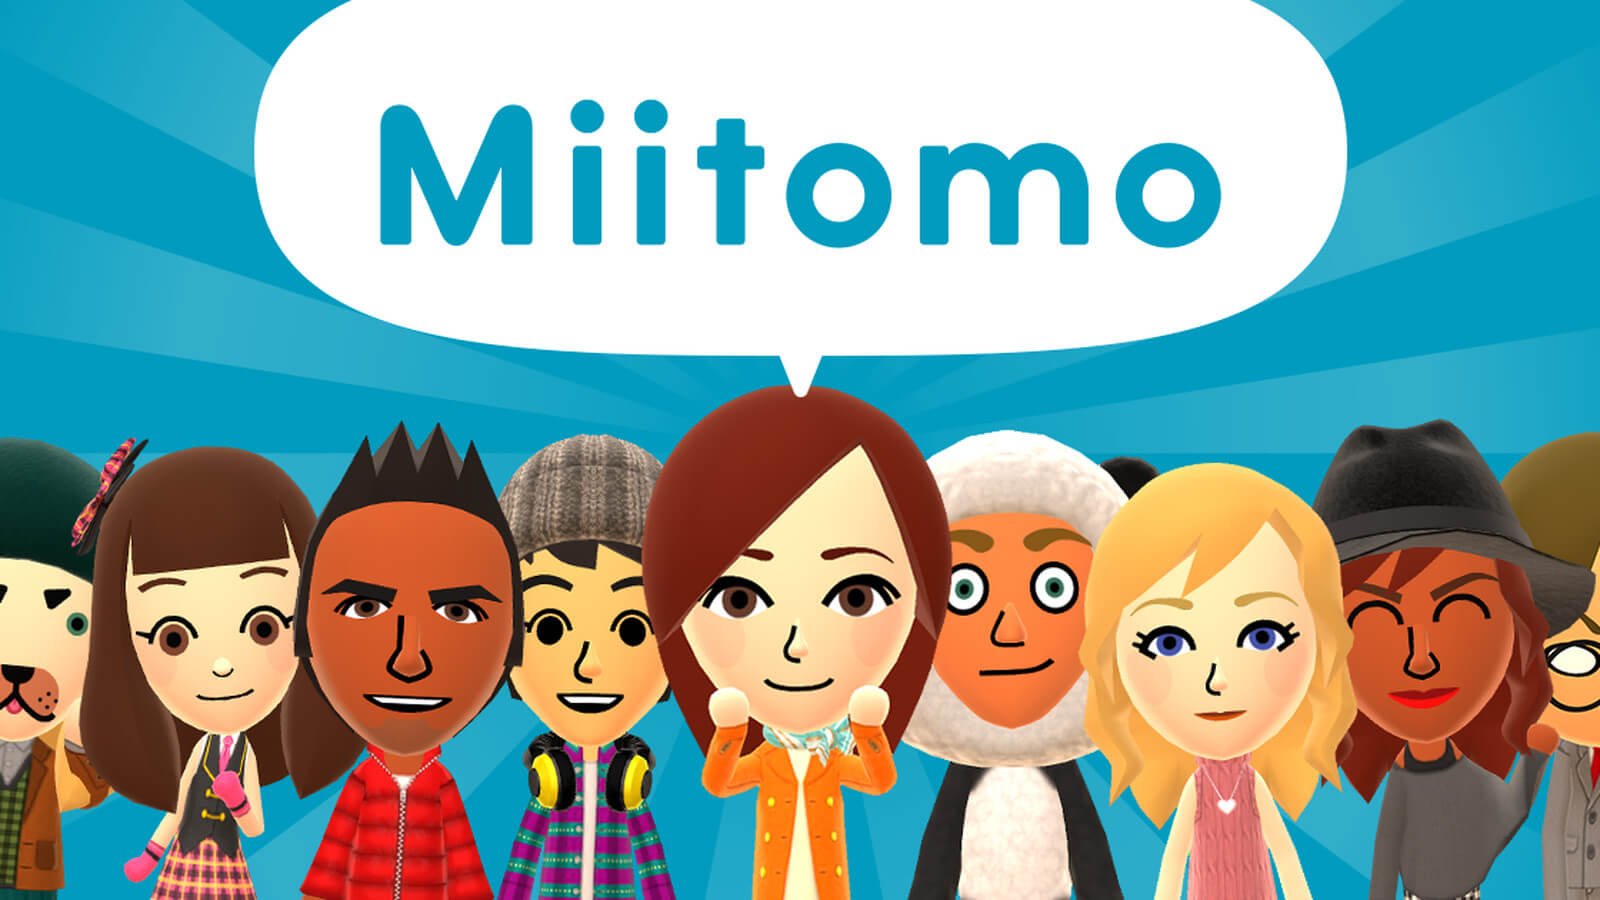 Miitohno! Nintendo will shut down Miitomo in May